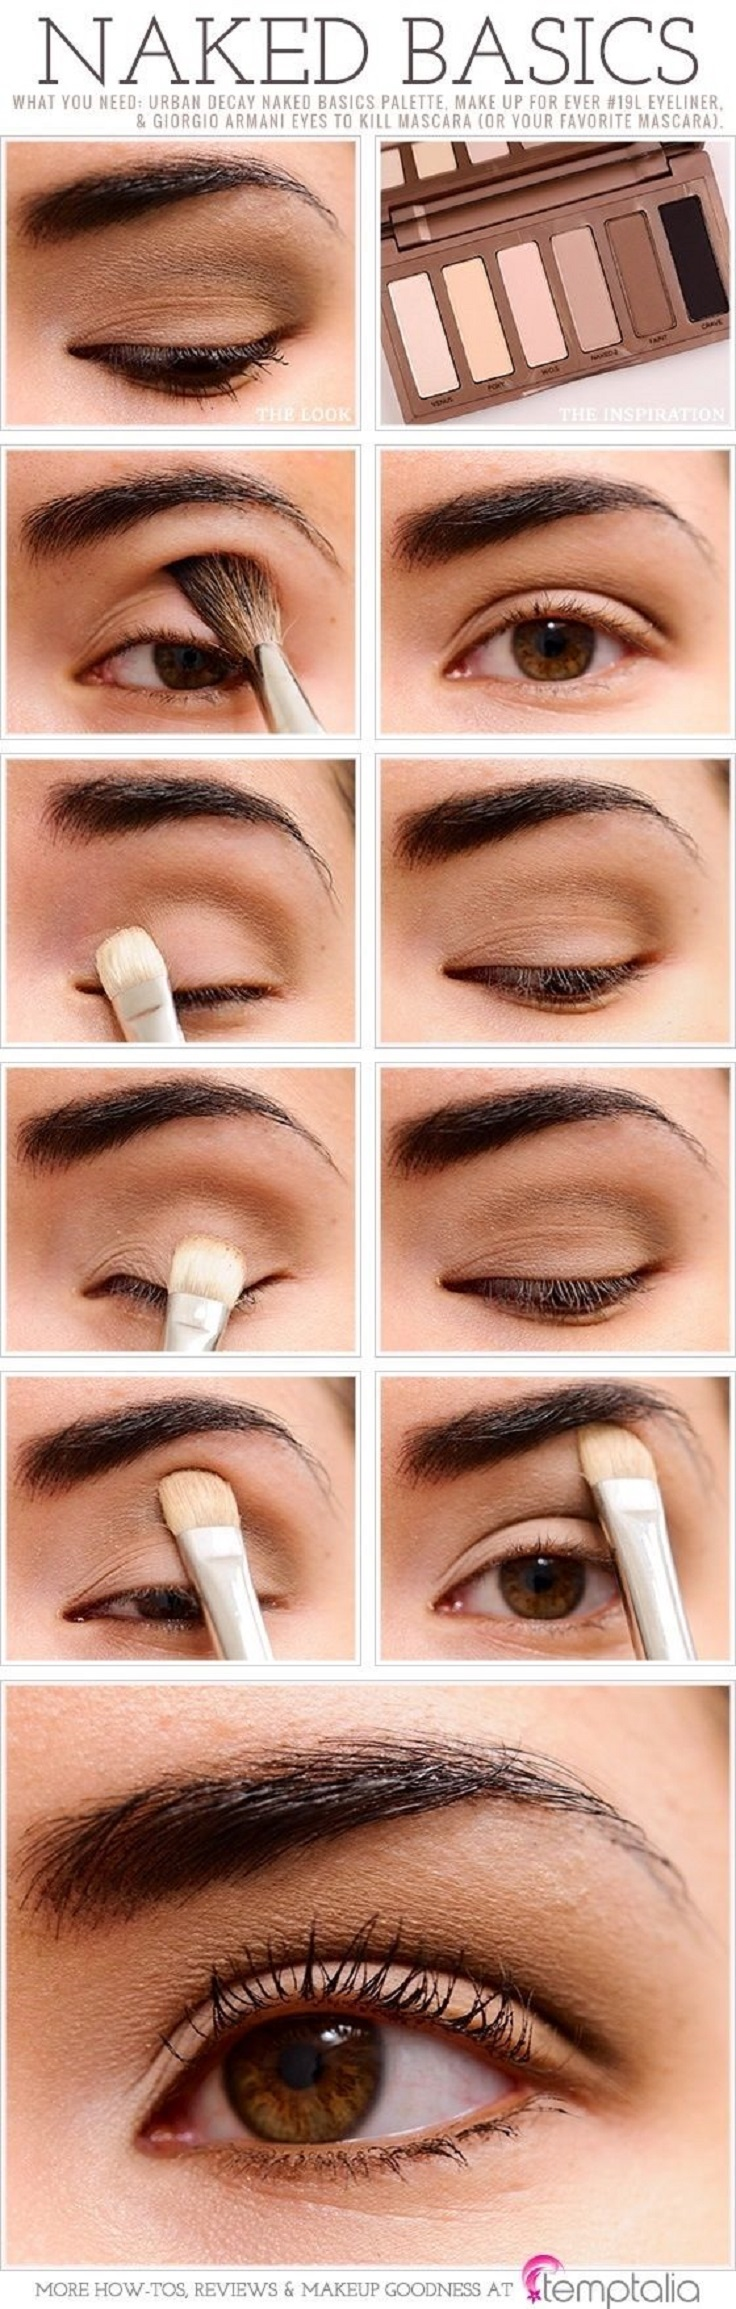 Soft-and-Natural-Makeup-Look-Ideas-and-Tutorials-5